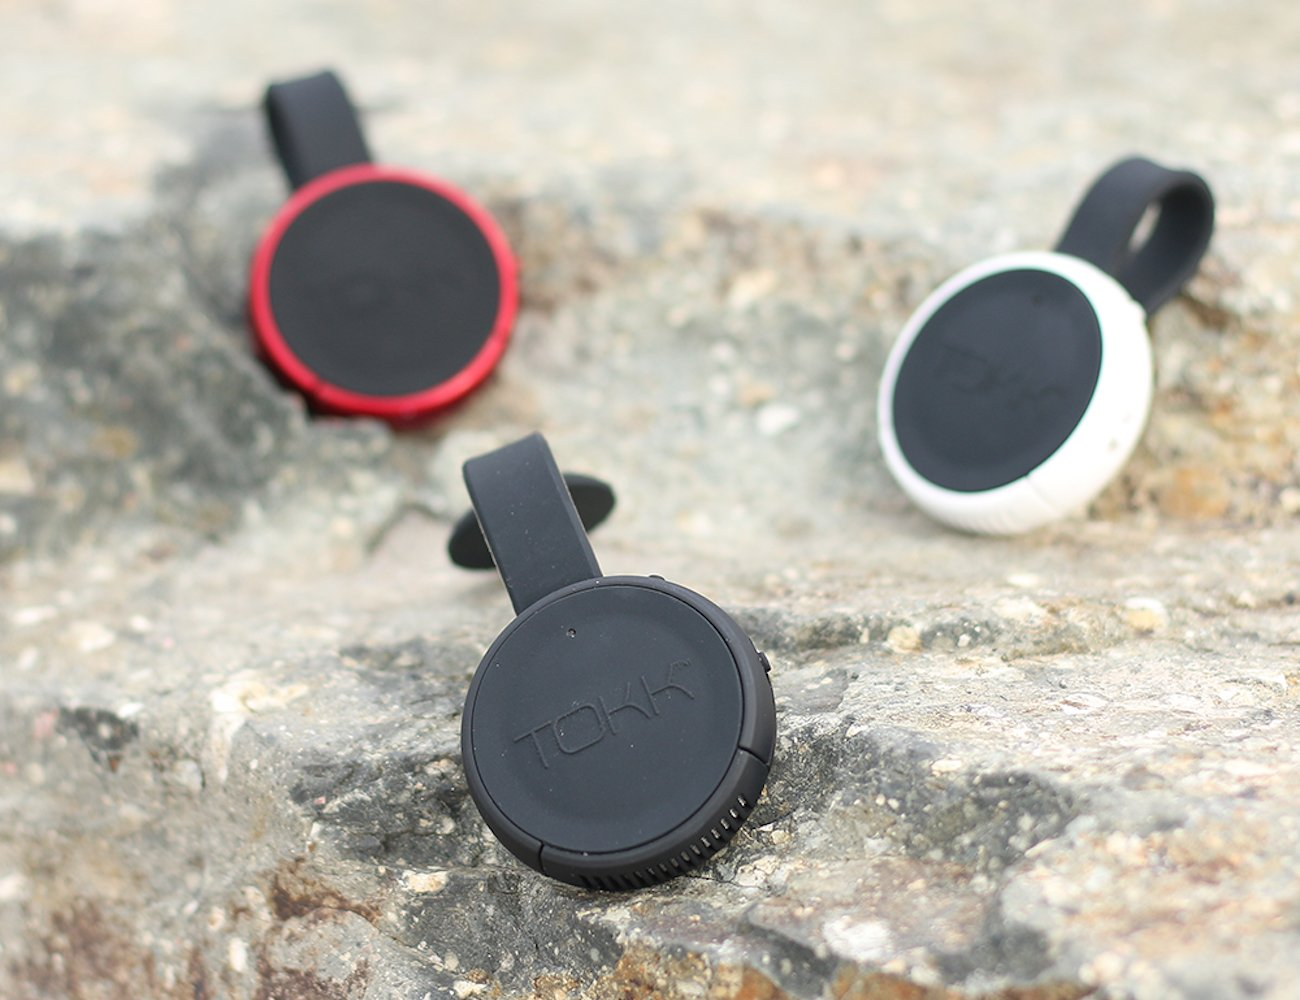 TOKK Smart Wearable Assistant